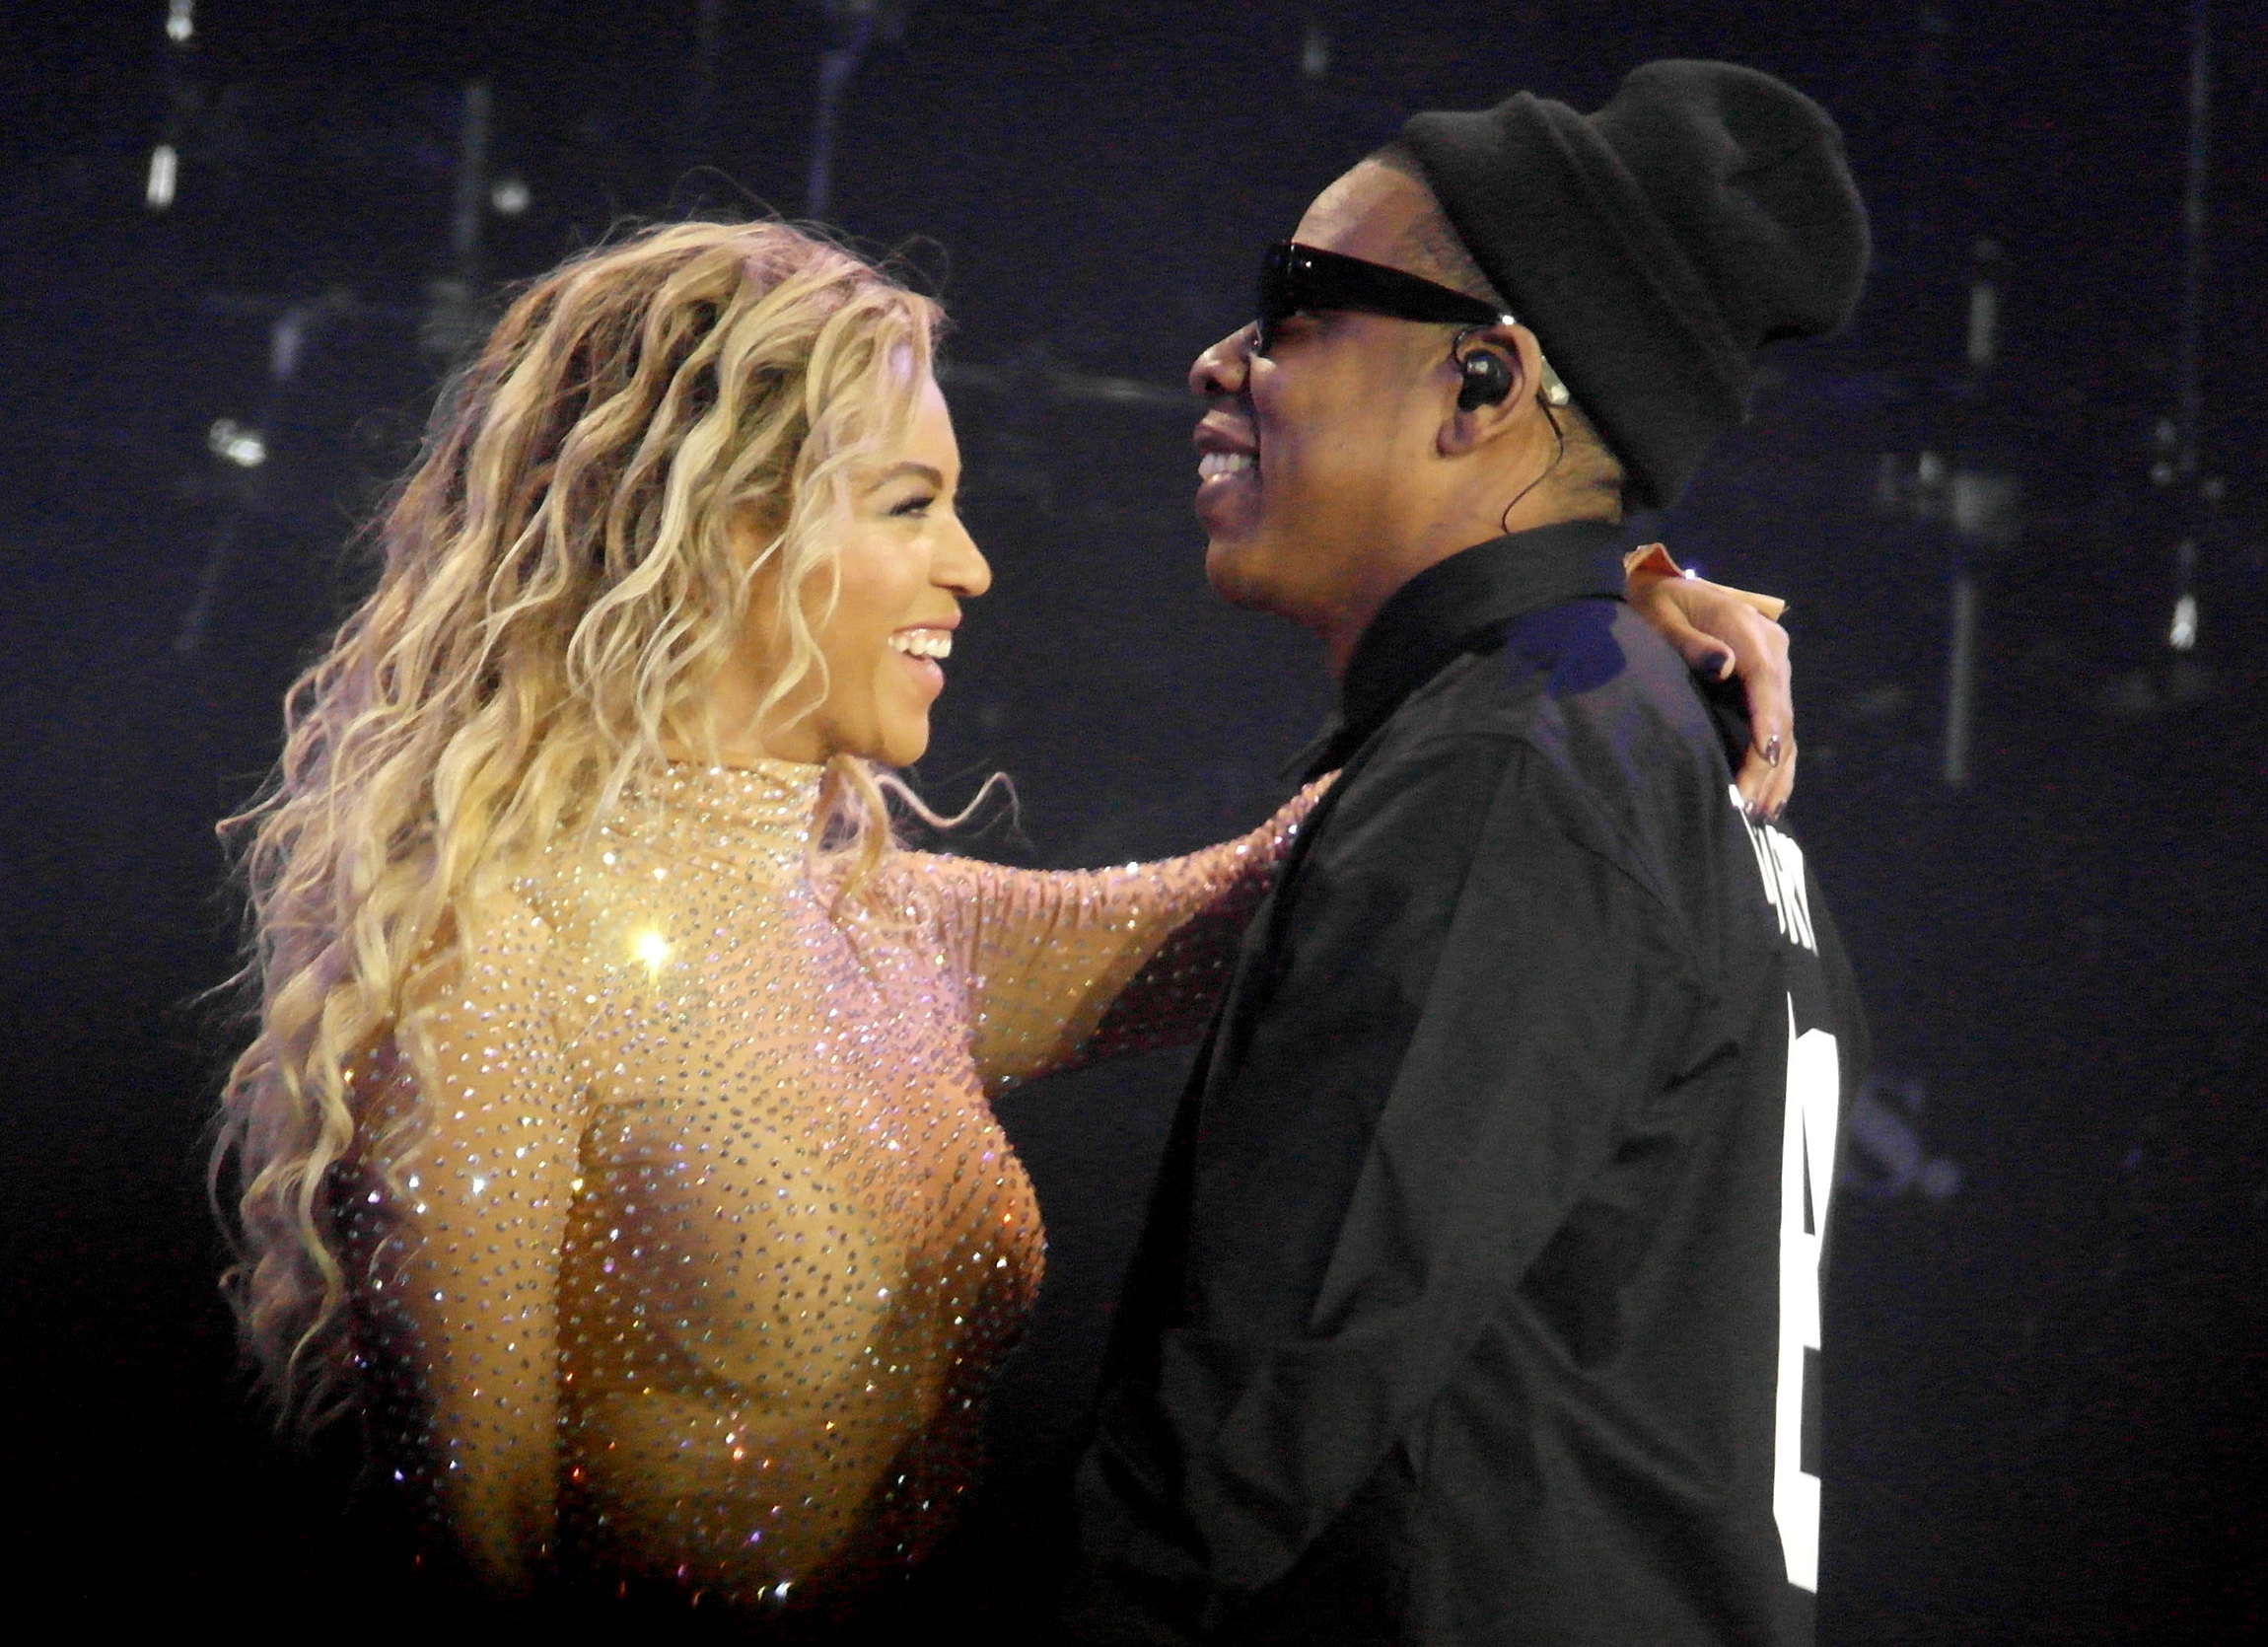 Beyonce performs live in concert at the O2 during 'The Mrs. Carter Show World Tour'. Husband and rapper, Jay Z joined her on stage for a special guest appearance                                    Featuring: Beyonce, Jay Z                  Where: London, United Kingdom                  When: 05 Mar 2014                  Credit: WENN.com